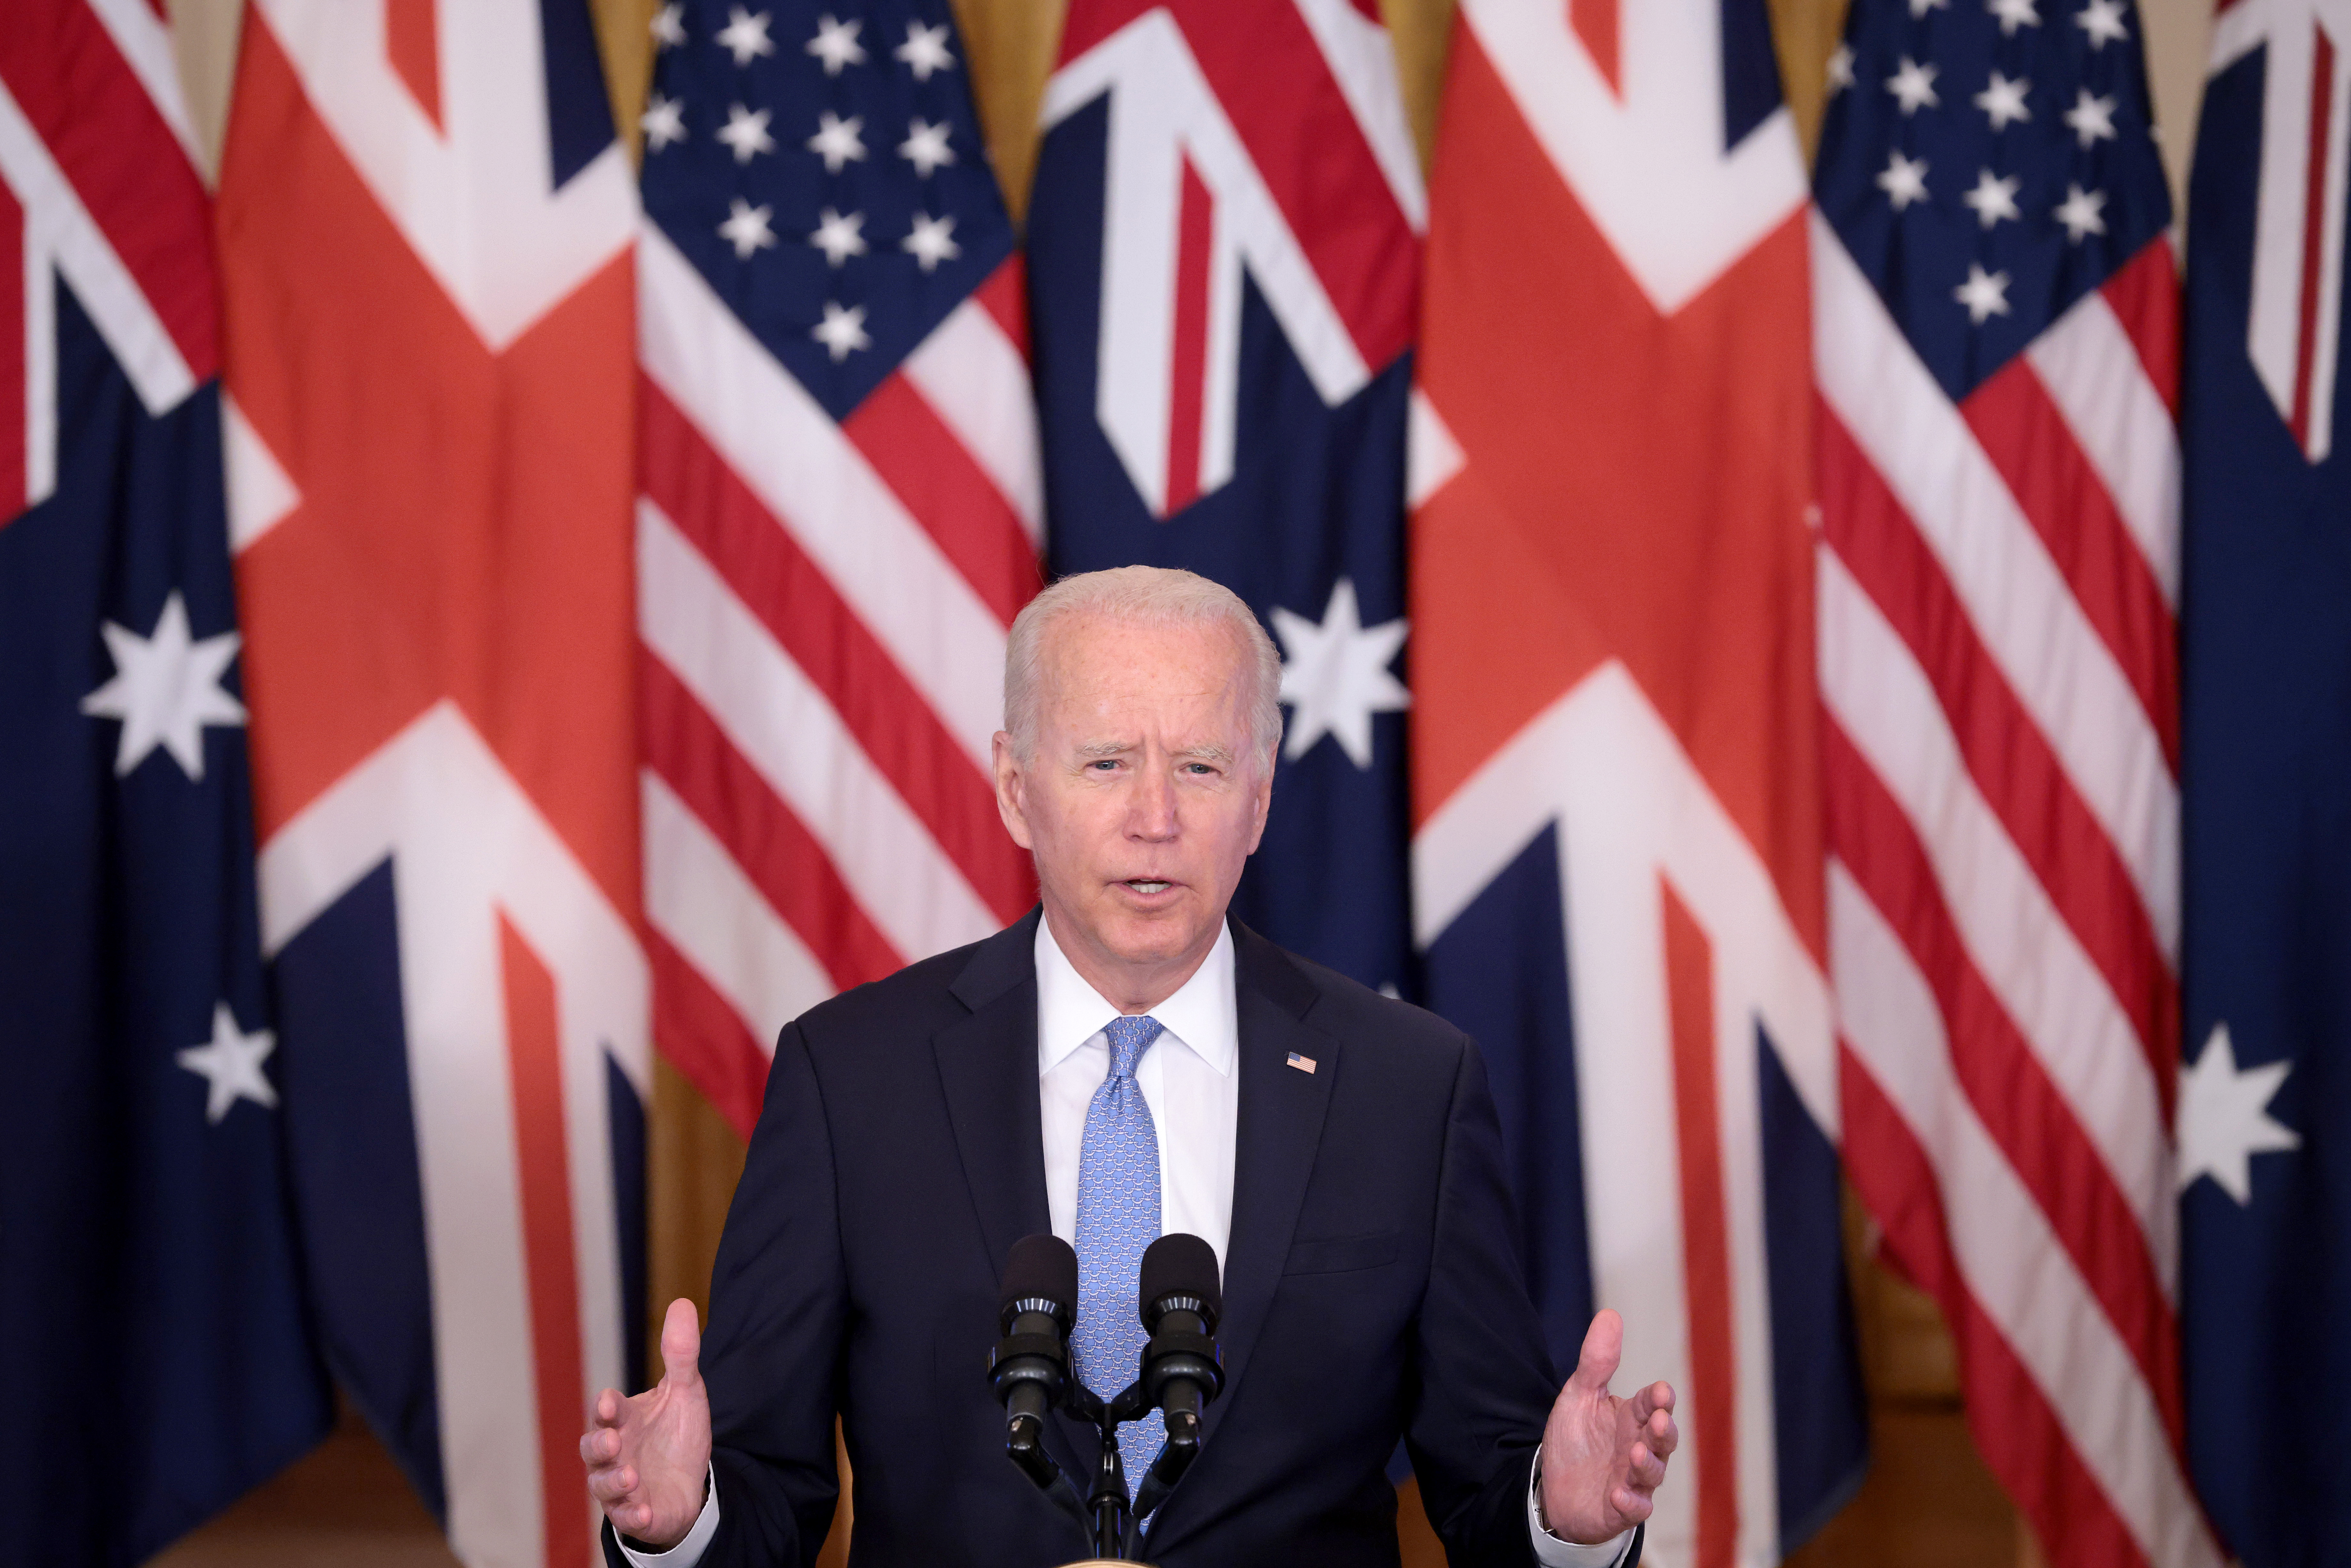 President Joe Biden speaks from the podium in the East Room of the White House in front of a row of US, British, and Australian flags.